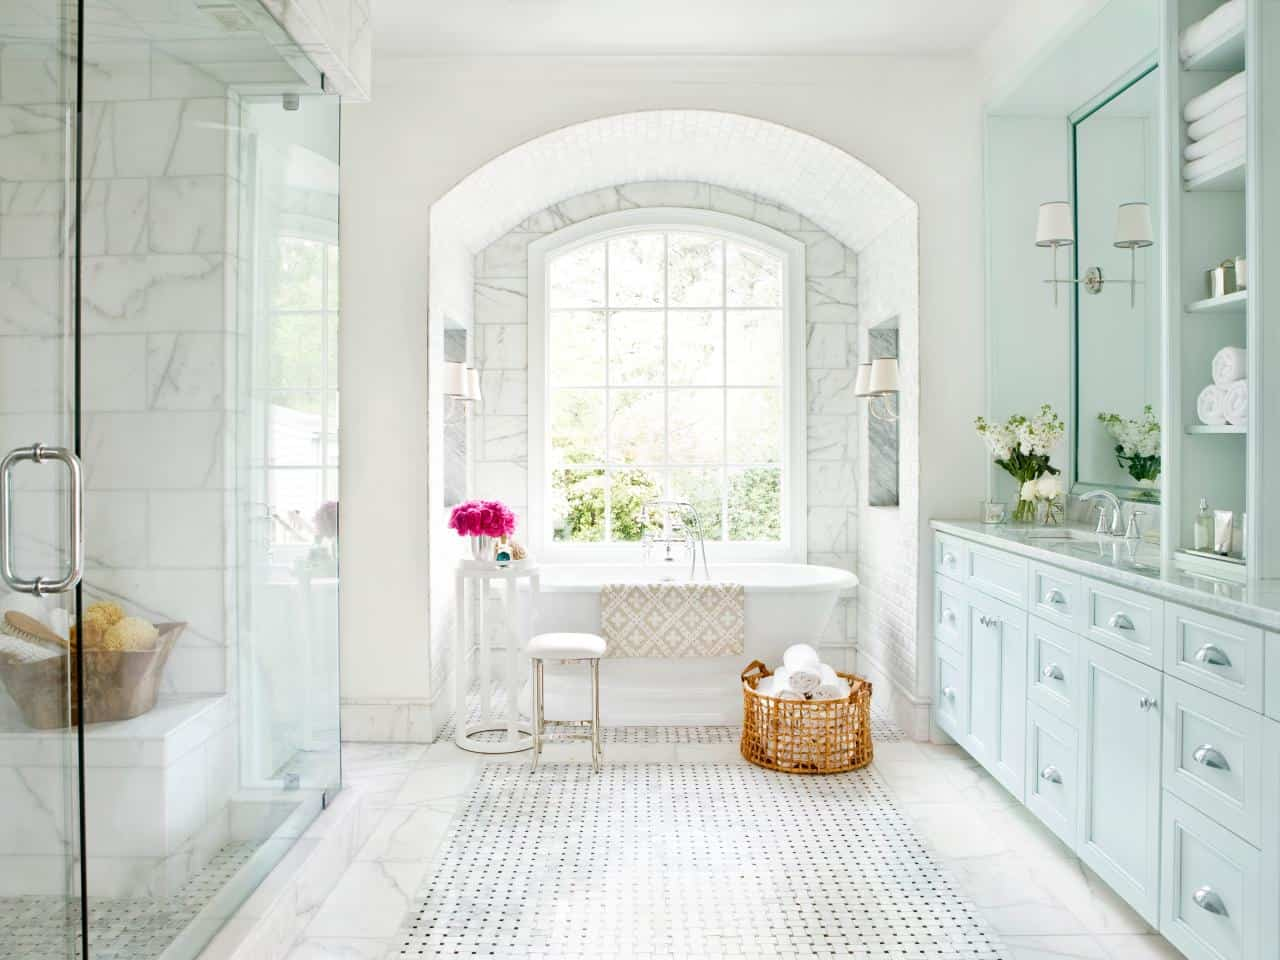 White Bathroom Designs That Will Inspire Your Next Renovations